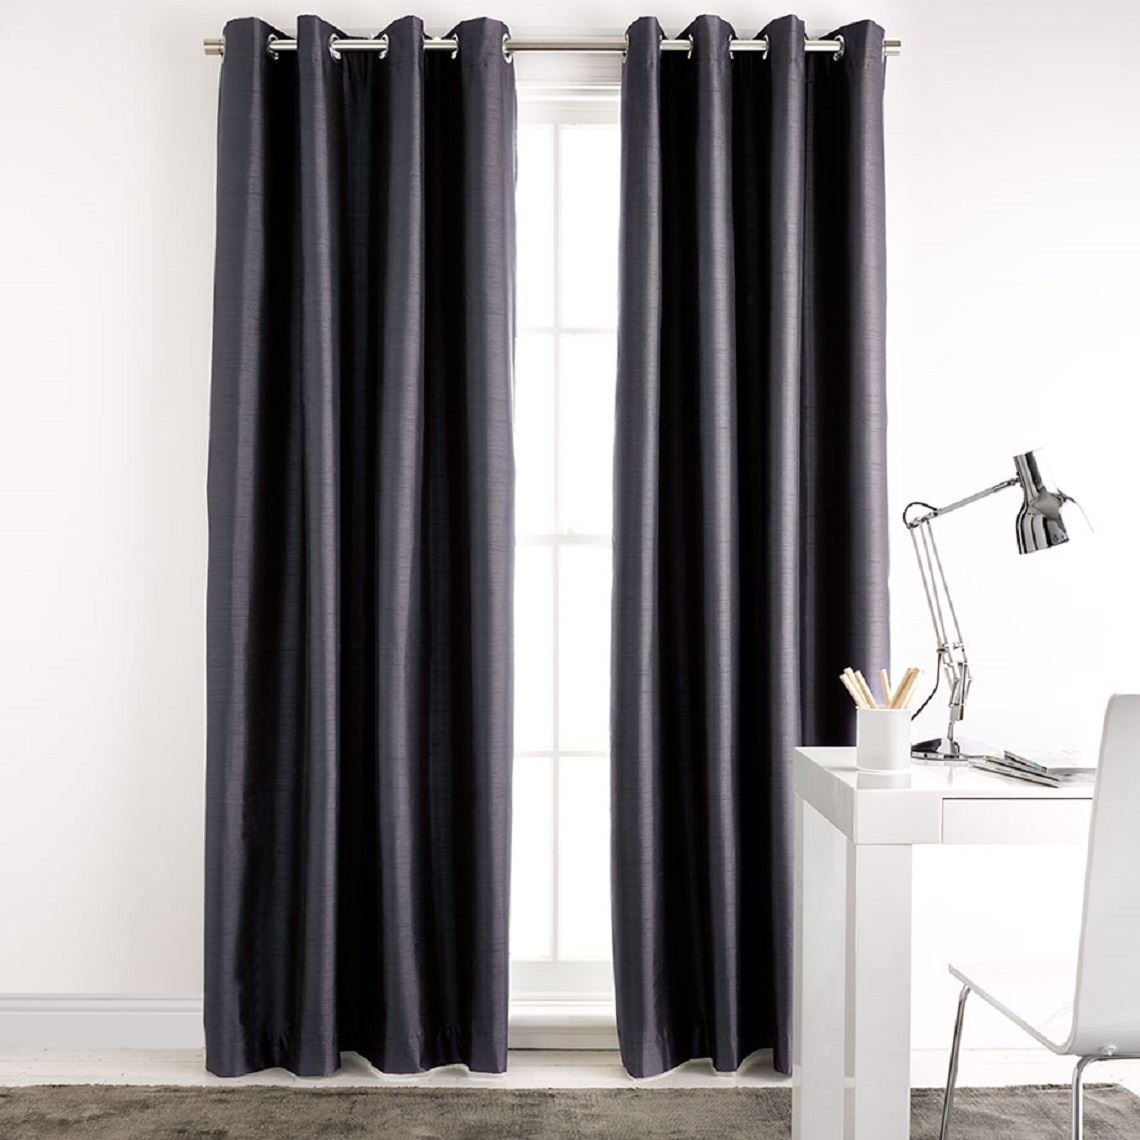 Aberdeen Blockout Eyelet Curtain Size W 180cm x D 0cm x H 250cm in Slate 100% Polyester/Acrylic Flock Coating/Stainless Steel Freedom by Freedom, a Curtains for sale on Style Sourcebook